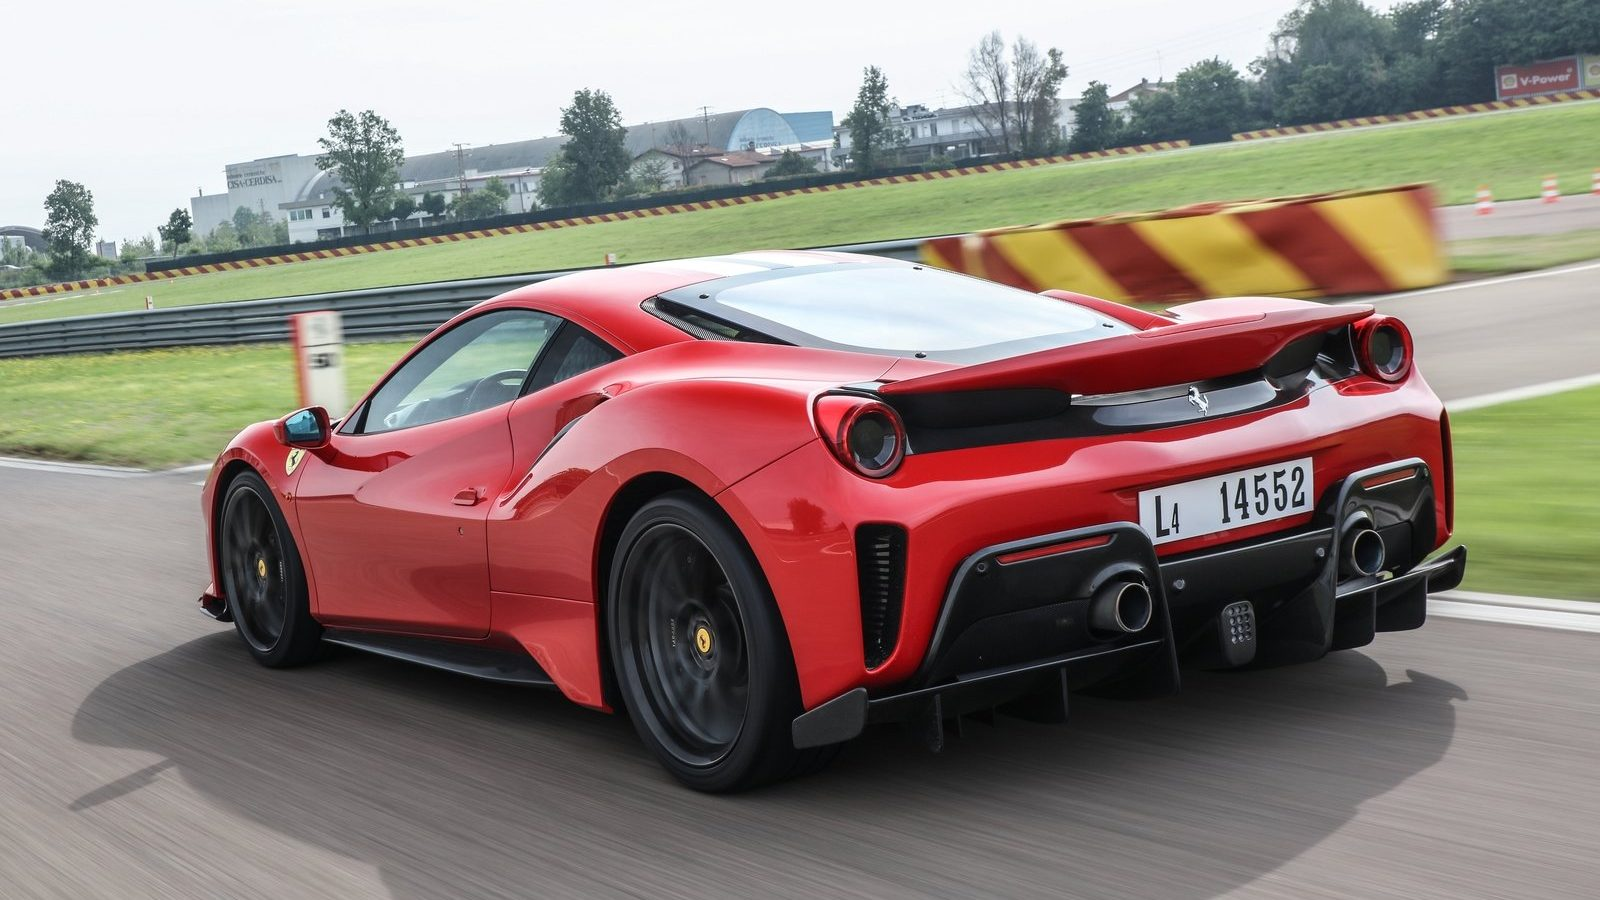 An image of a Ferrari 488 Pista out on a track.